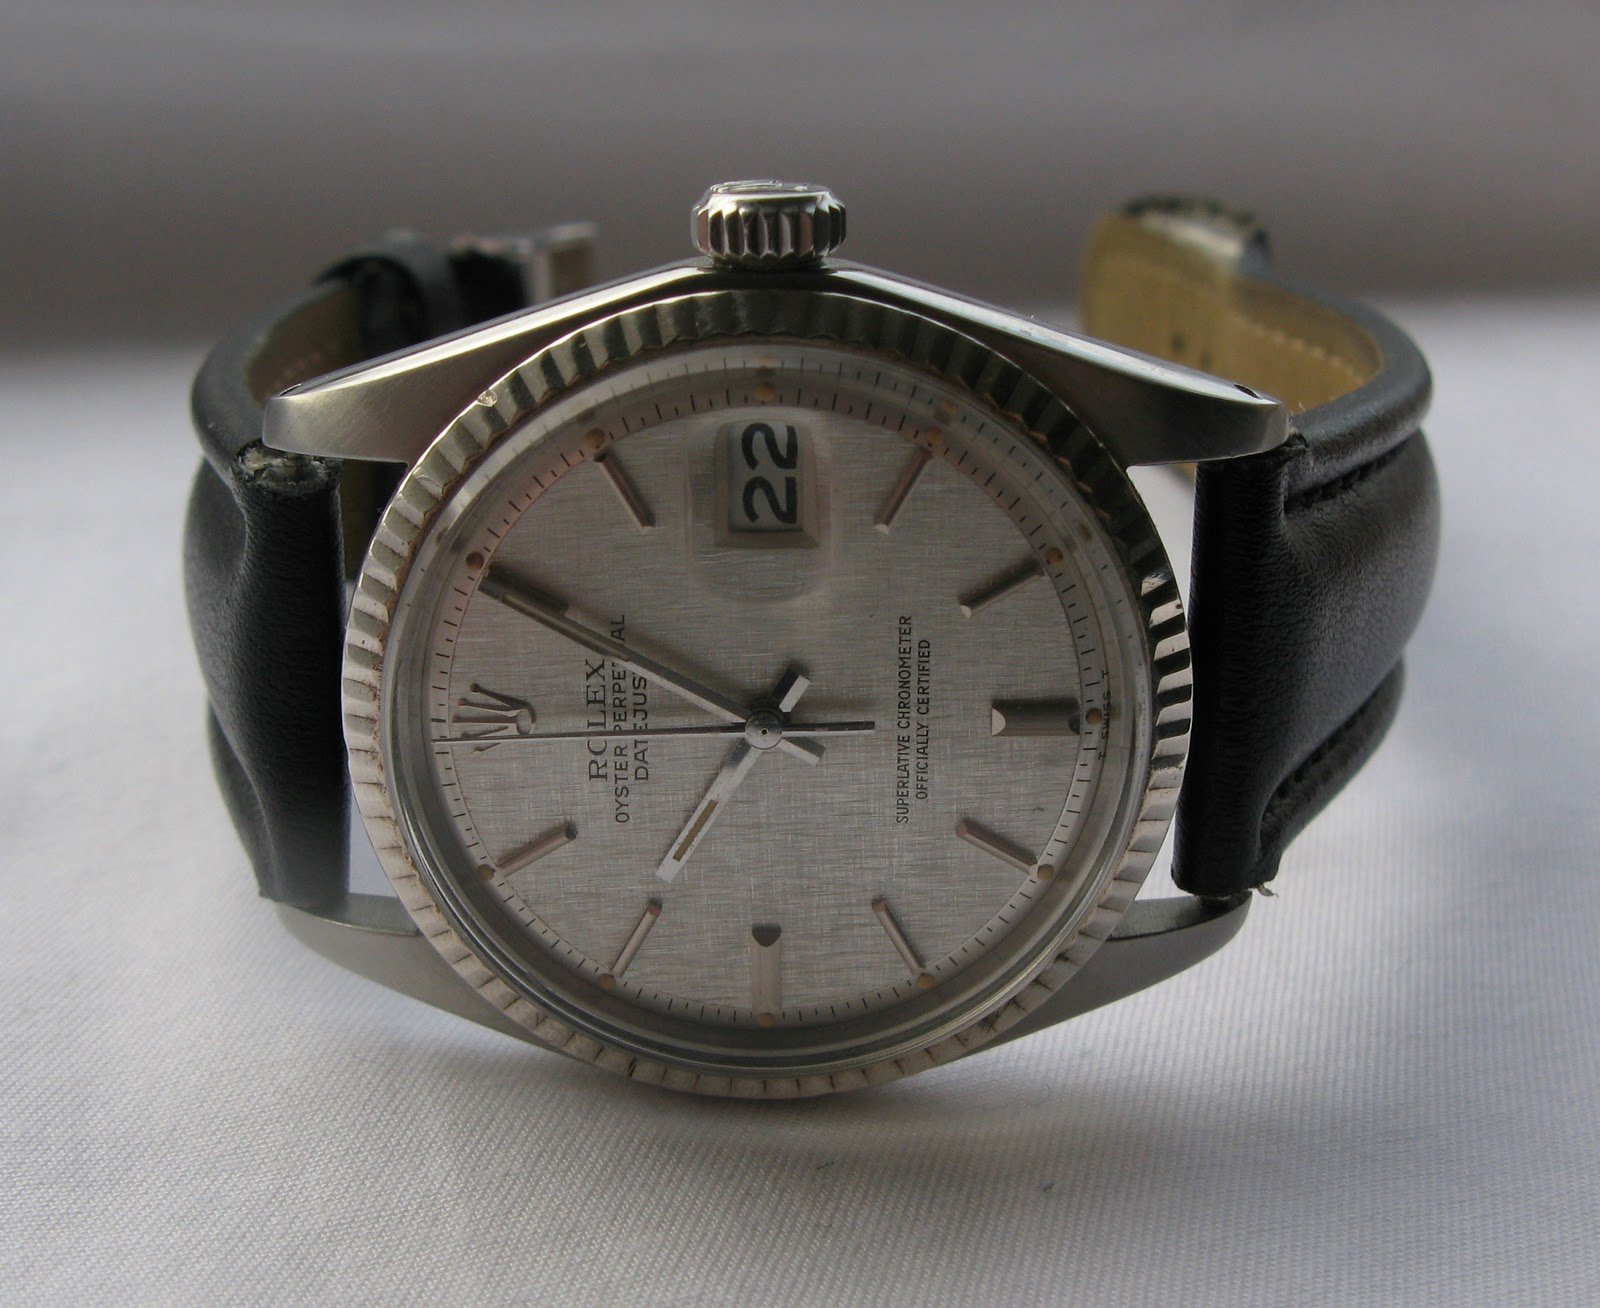 Andy B Vintage Watches 1974 Rolex Oyster Perpetual Datejust